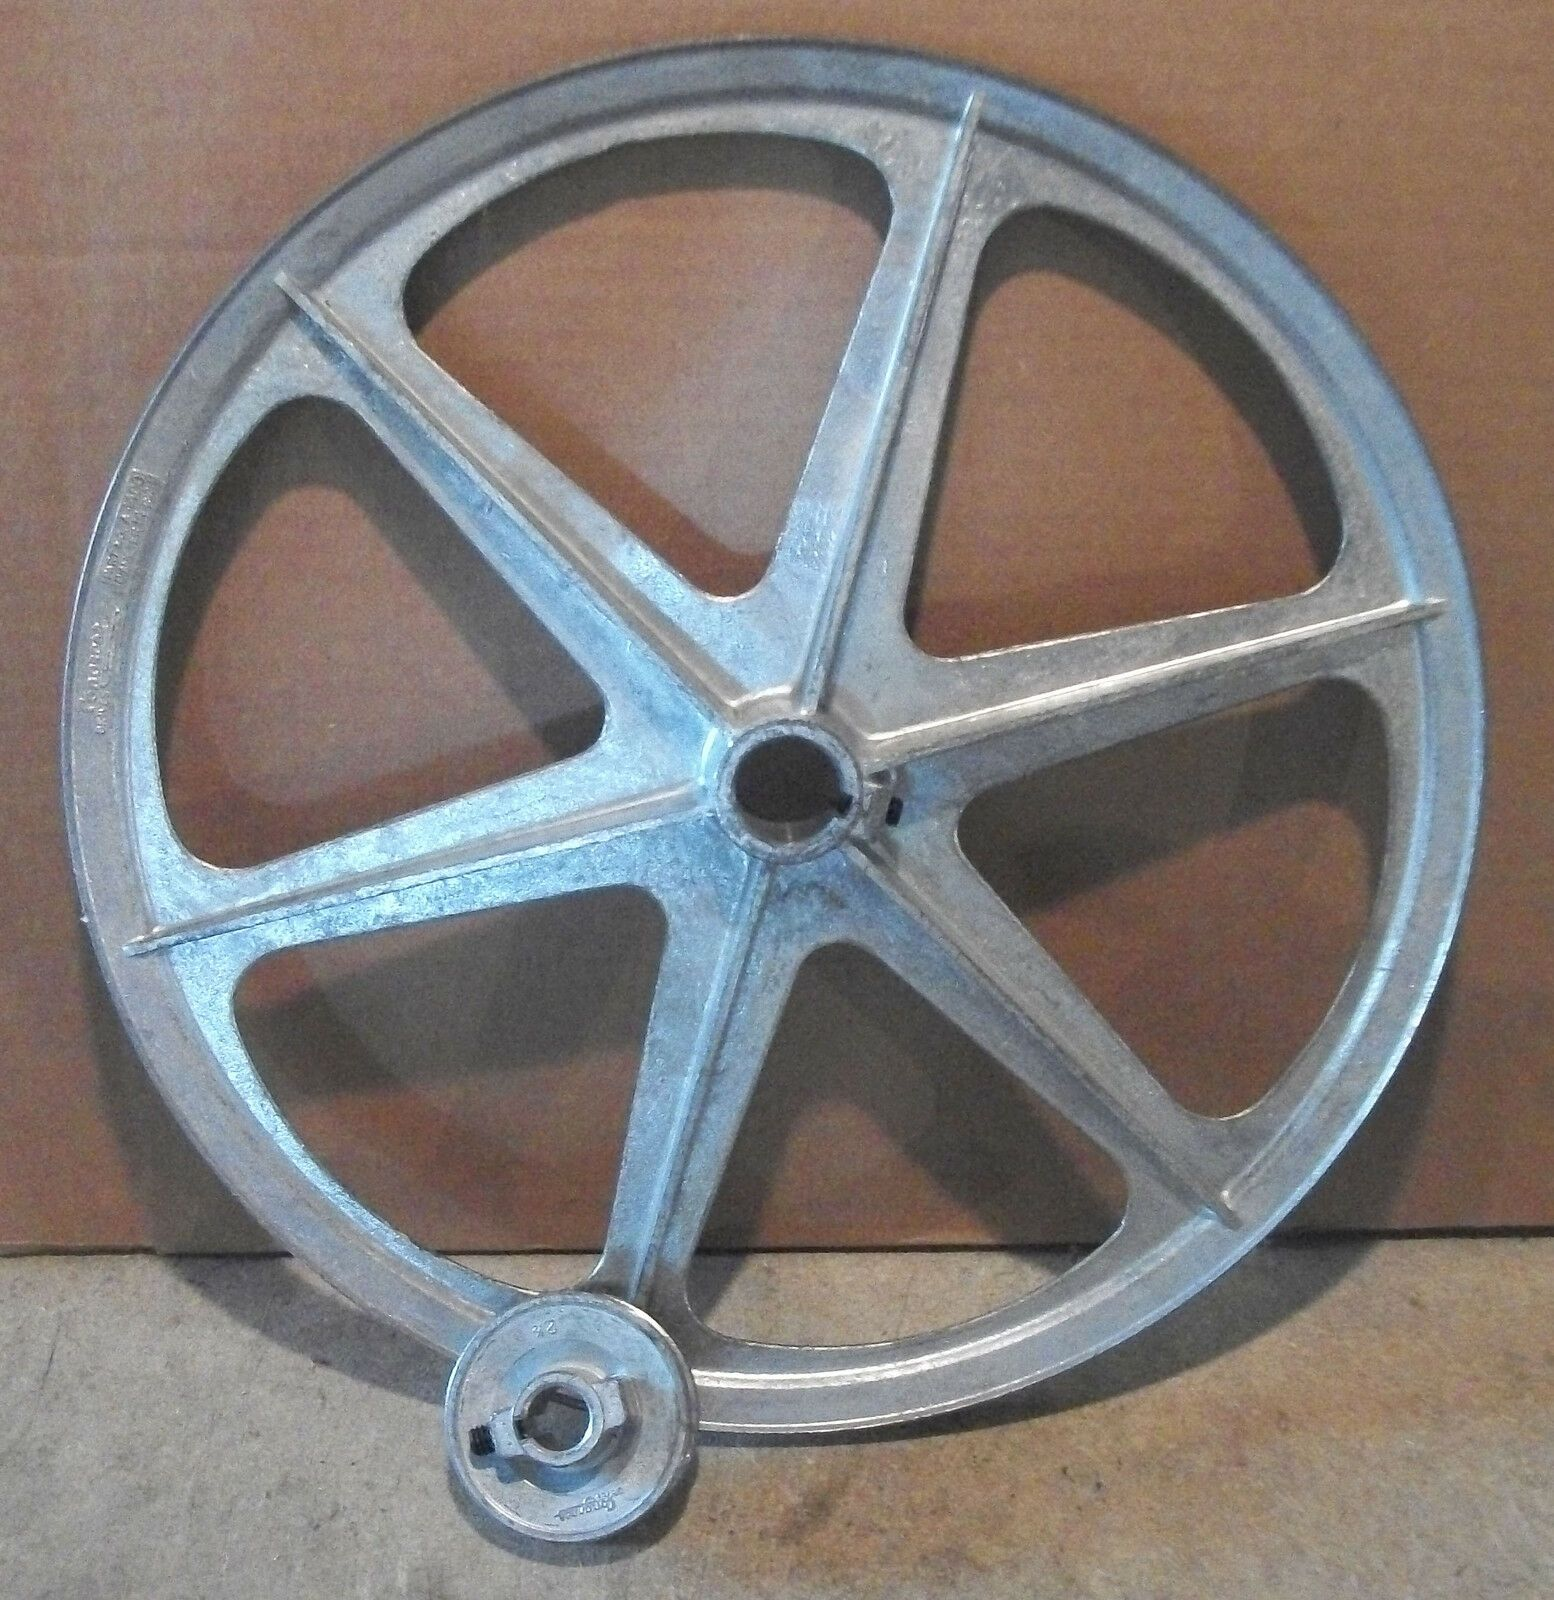 """Pulley Set for Whizbang Chicken Plucker 14/"""" driven pulley and 2.5/"""" drive pulley"""